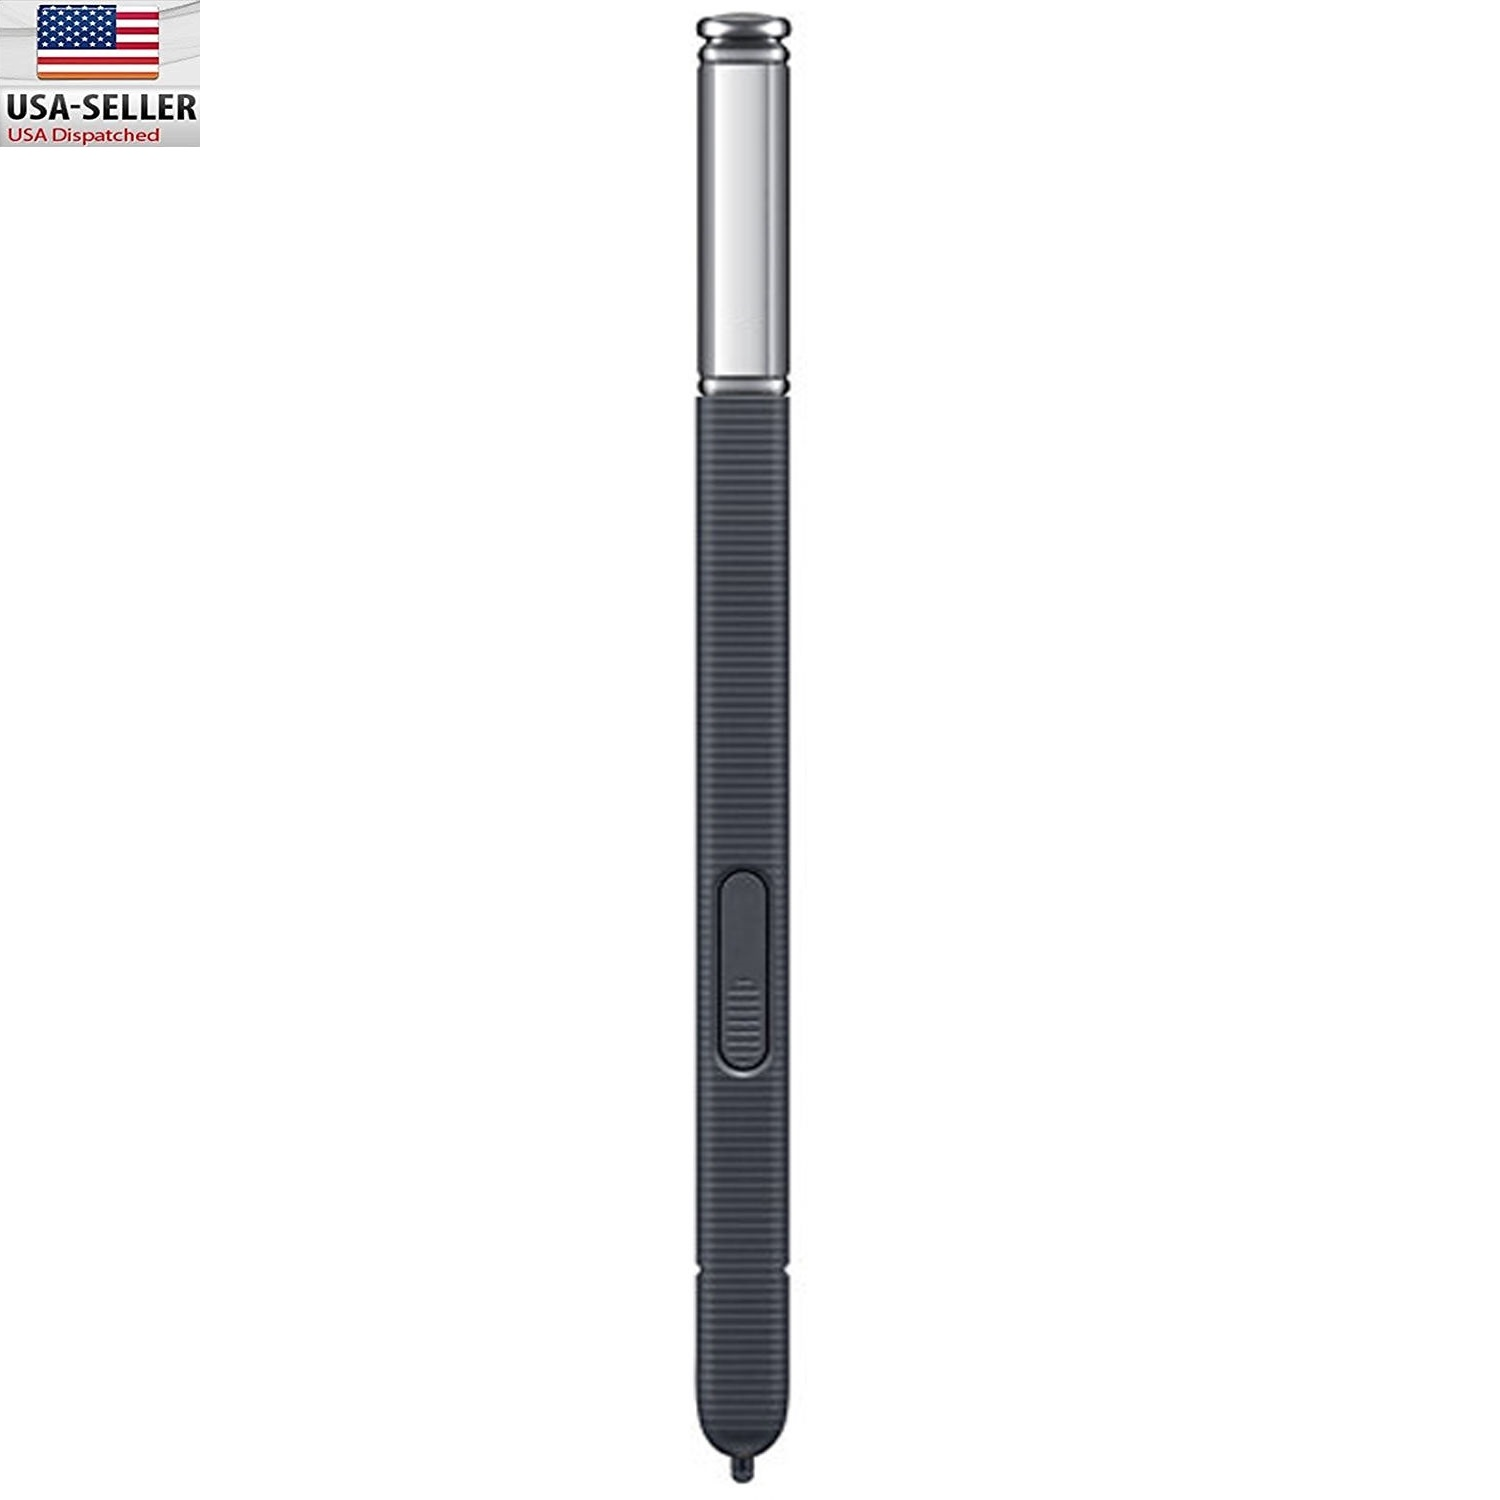 Stylus Pencil S Pen For Samsung Galaxy Note 5 N920 AT/&T,Verizon,T-Mobile,Sprint